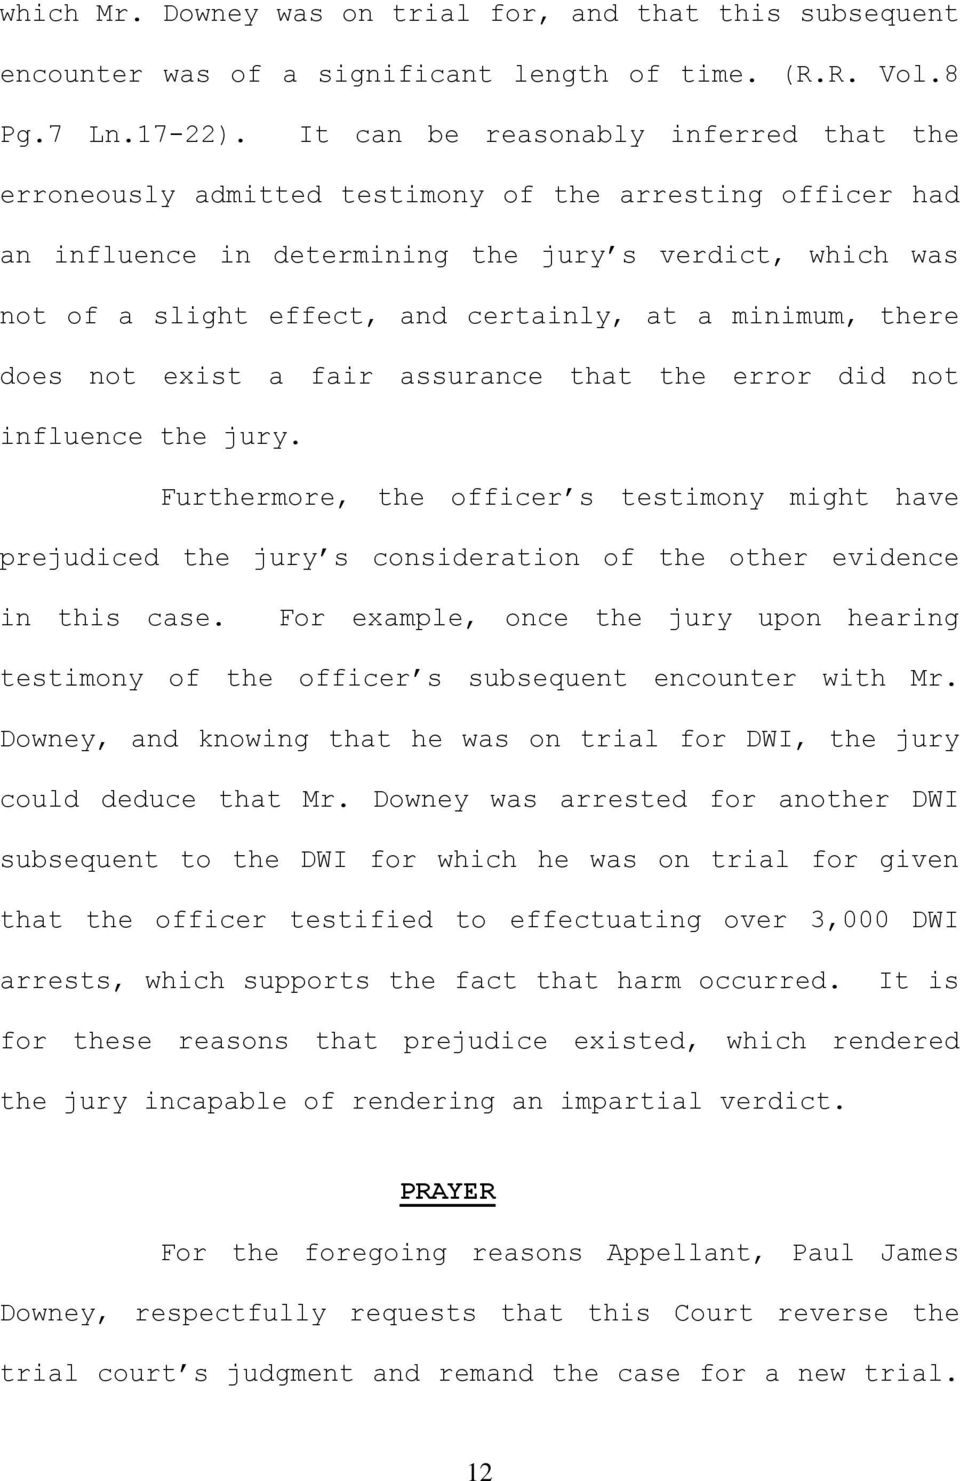 a minimum, there does not exist a fair assurance that the error did not influence the jury.